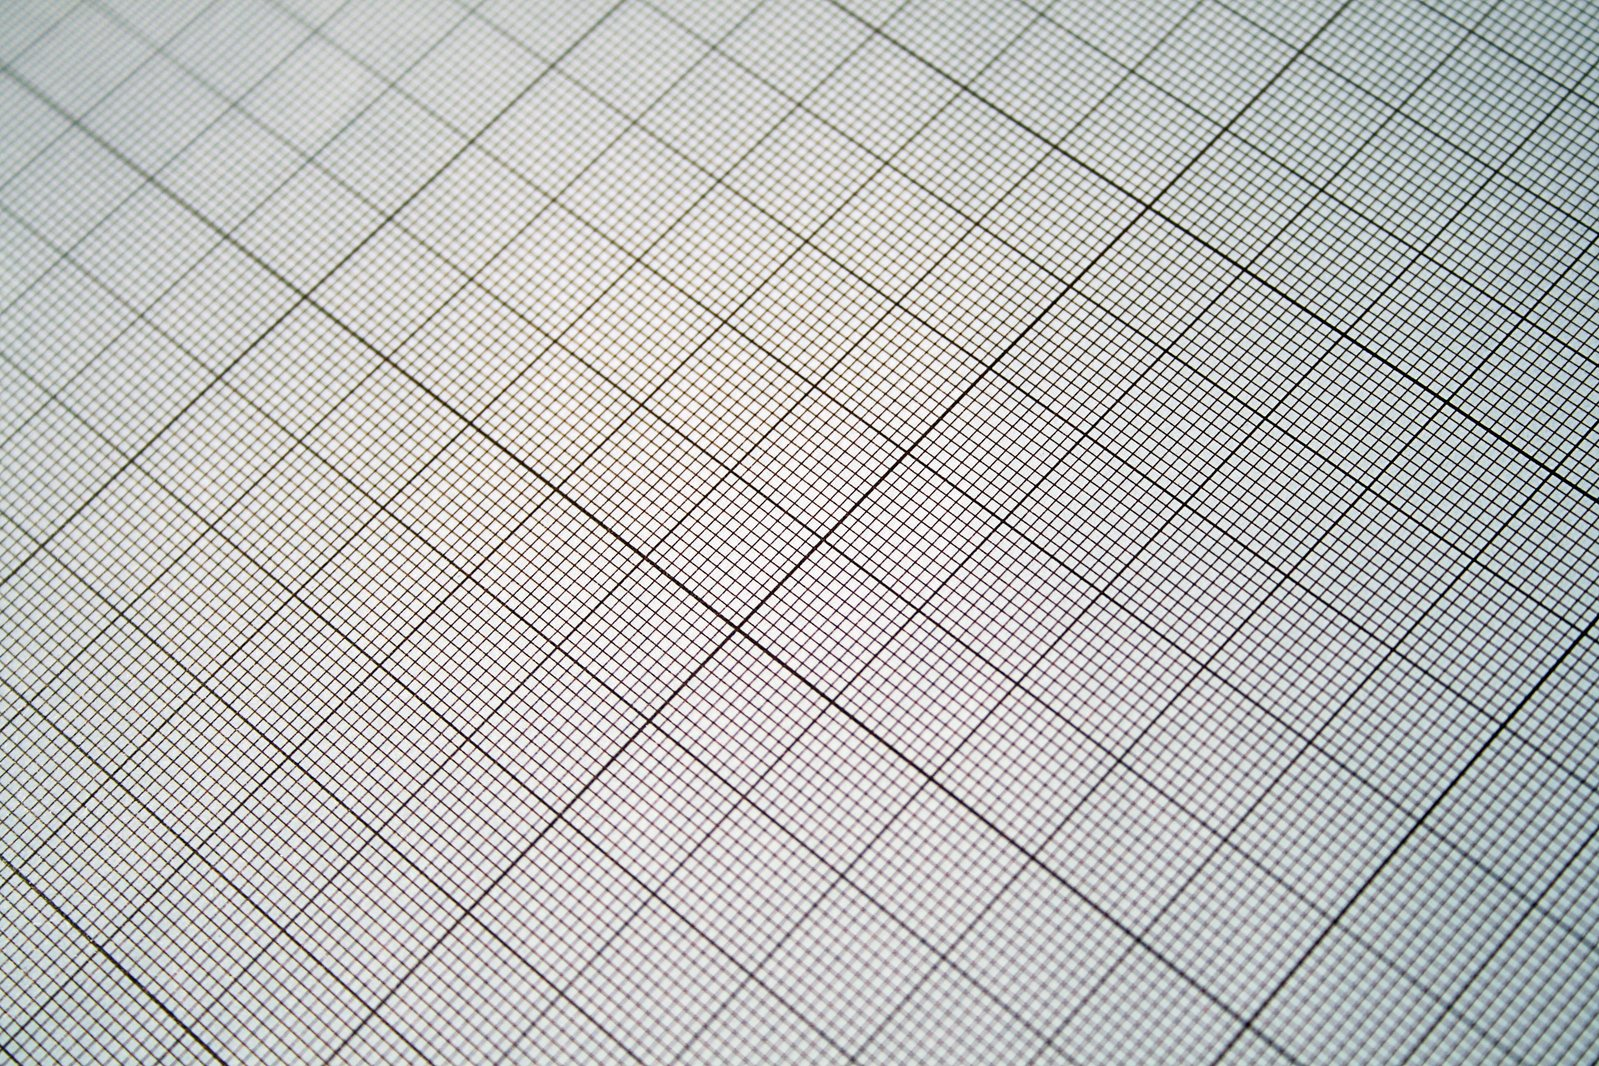 free plotting paper 1 stock photo freeimages com